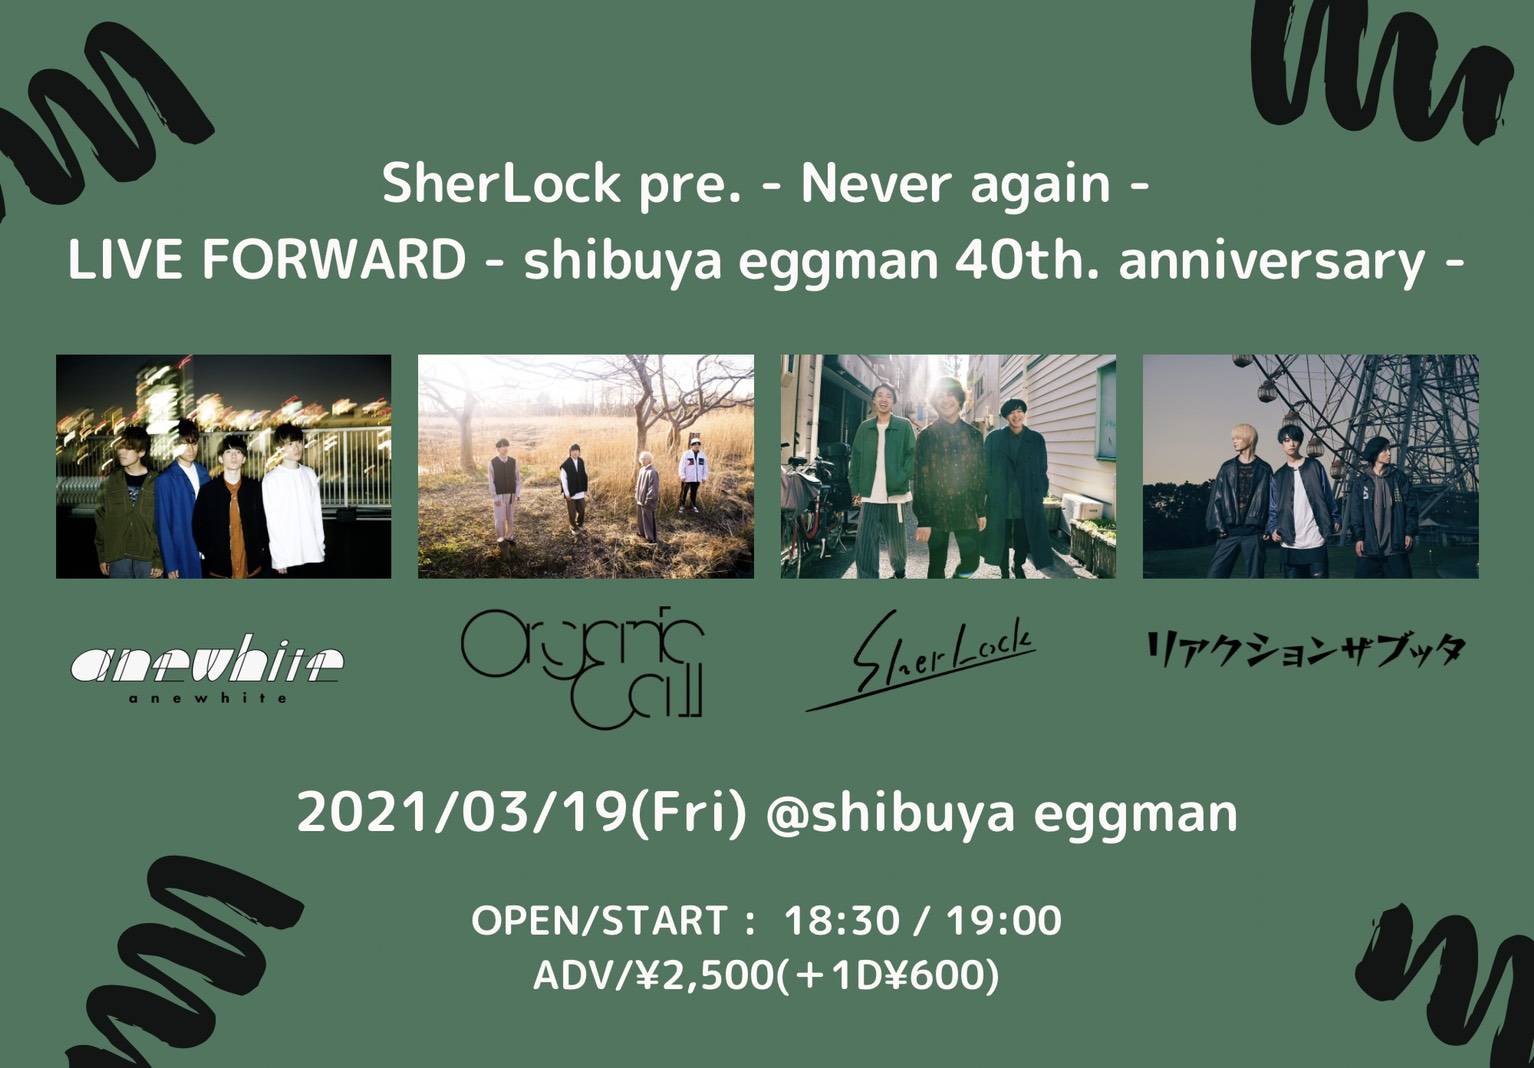 LIVE FORWARD – shibuya eggman 40th. anniversary – SherLock pre. 「Never again」